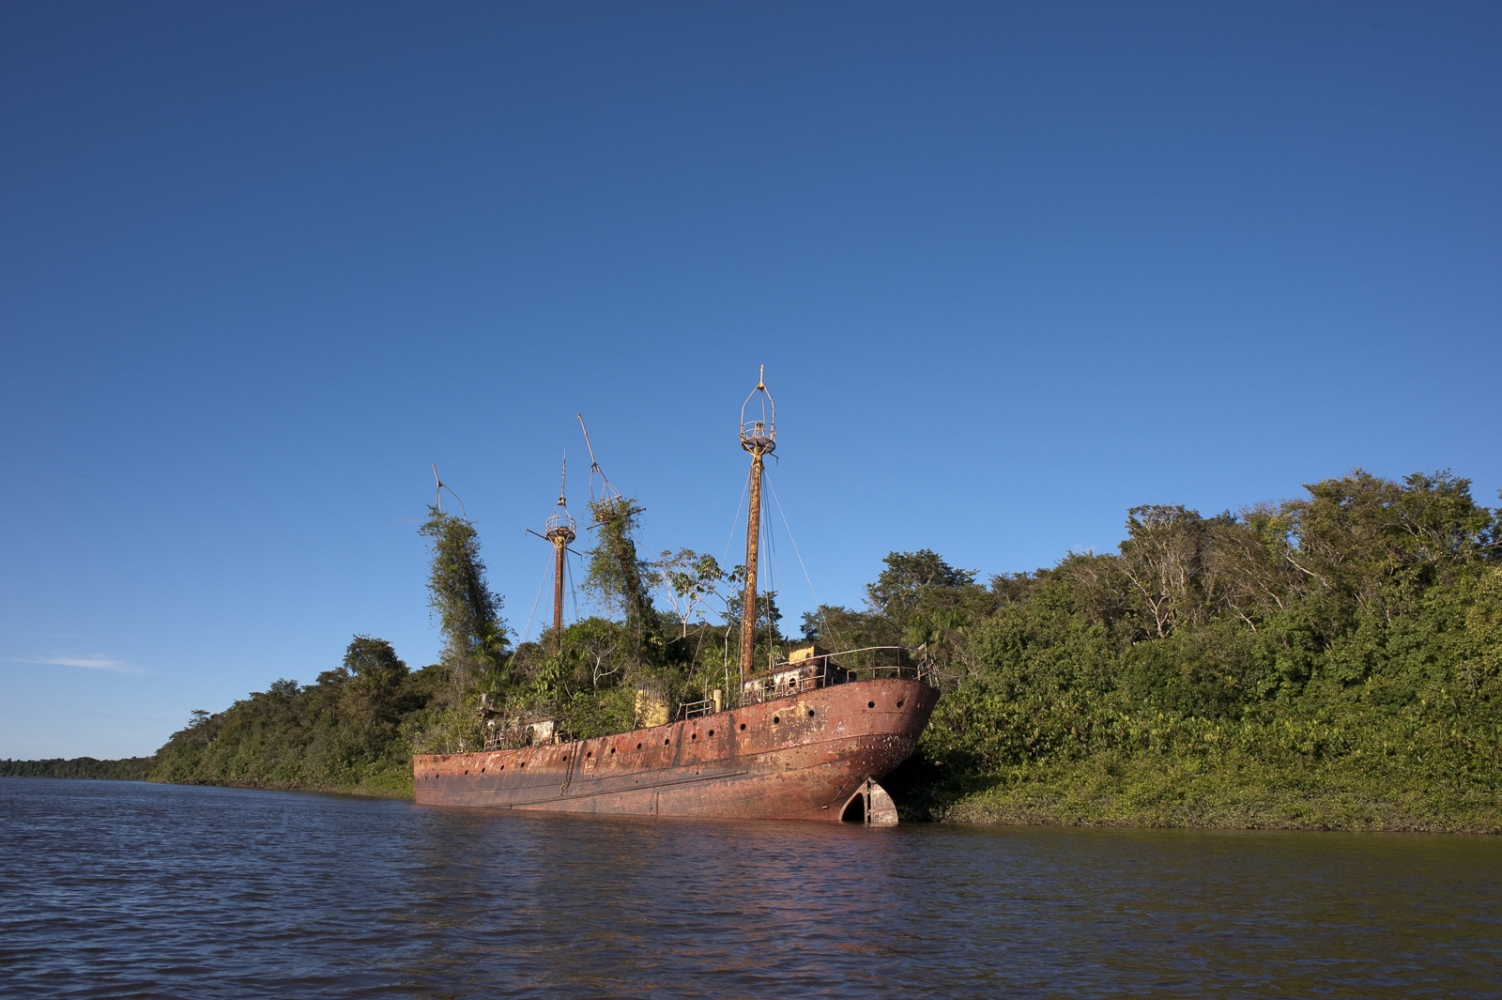 Beached light ship on the Suriname River en route from Jodensavanne